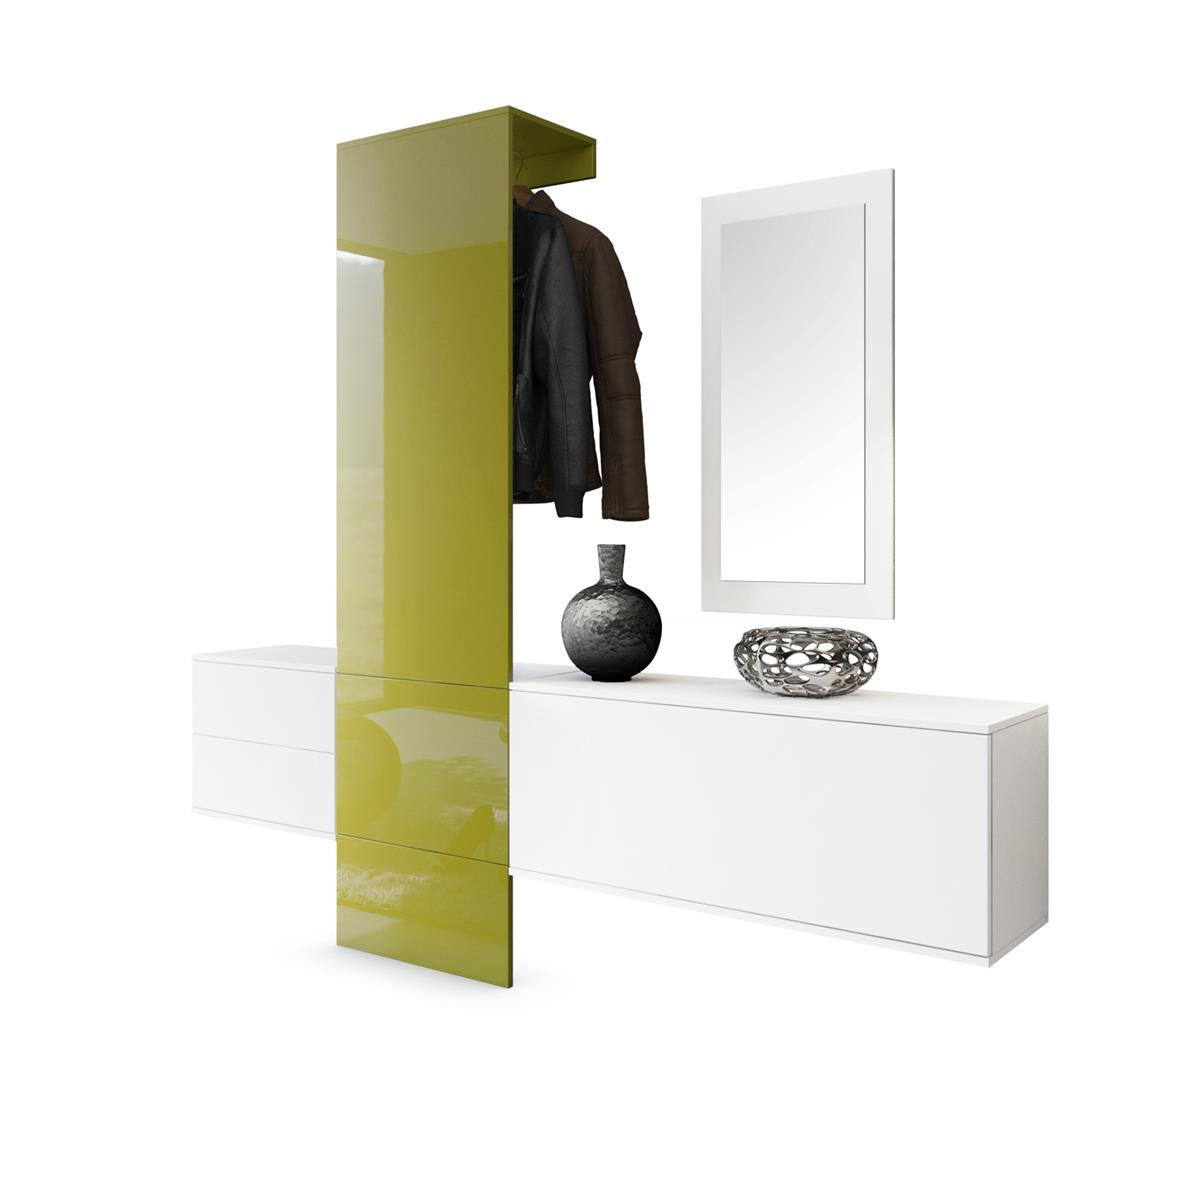 Garderobe carlton set 1 inkl spiegel variable for Garderobe carlton